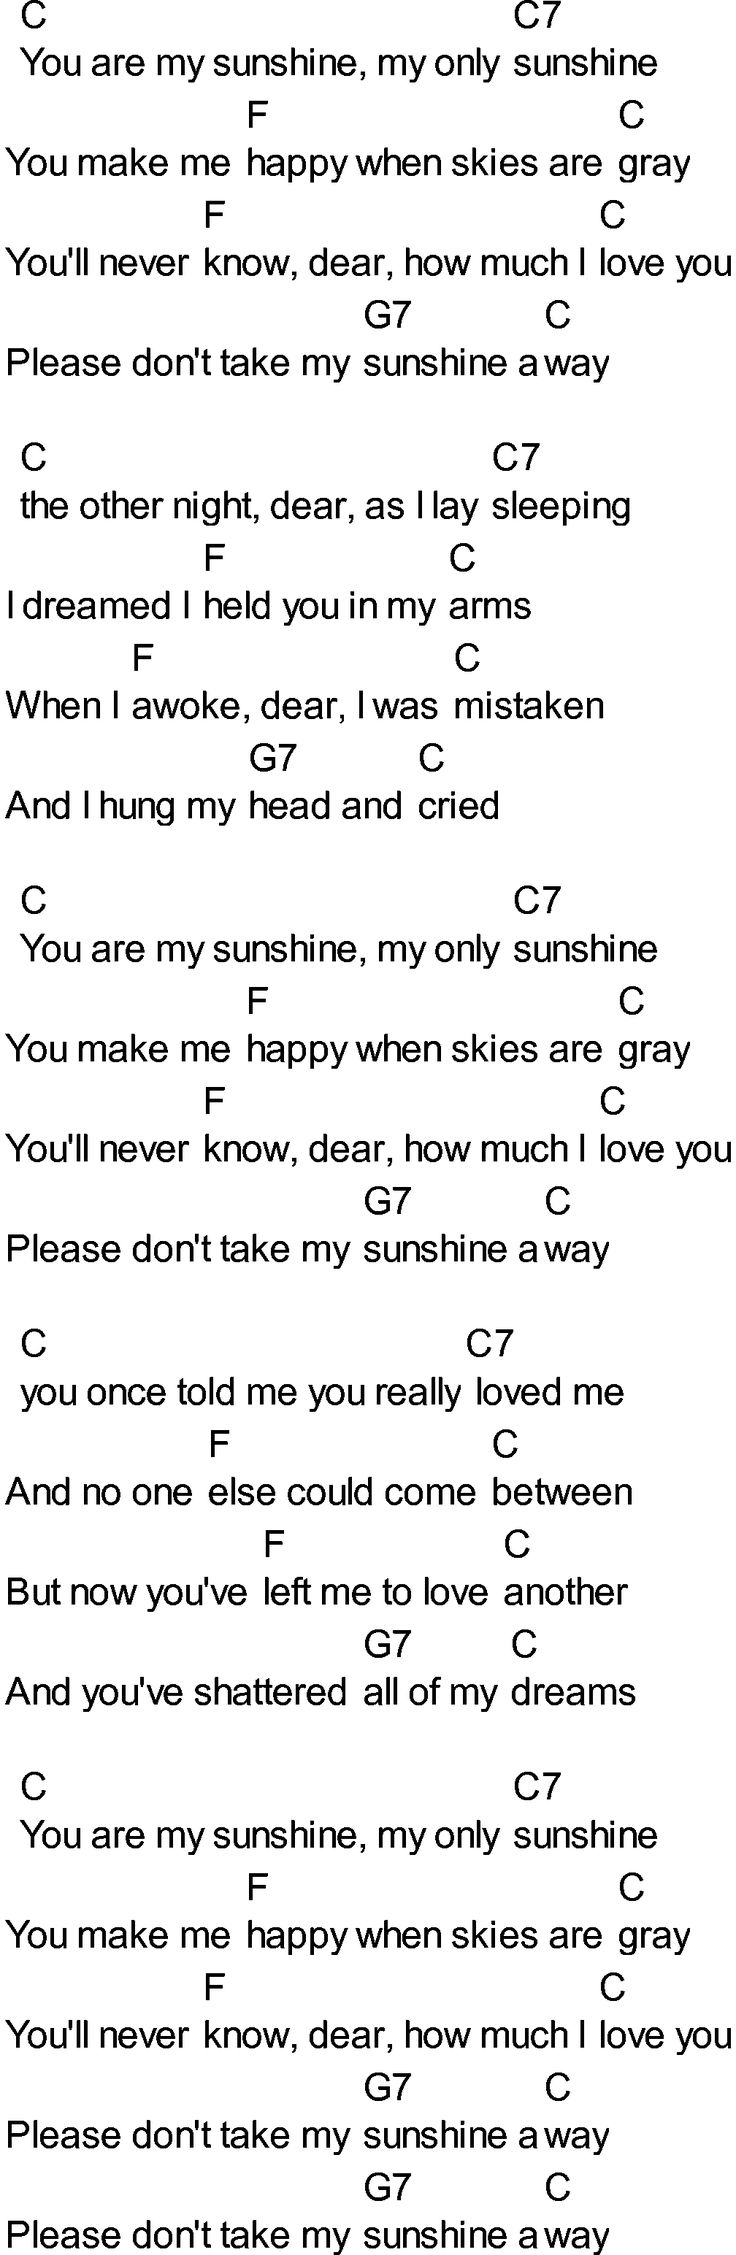 Best 25 ukulele chords ideas on pinterest ukulele im yours bluegrass songs with chords you are my sunshine im yours ukulele chordseasy hexwebz Images